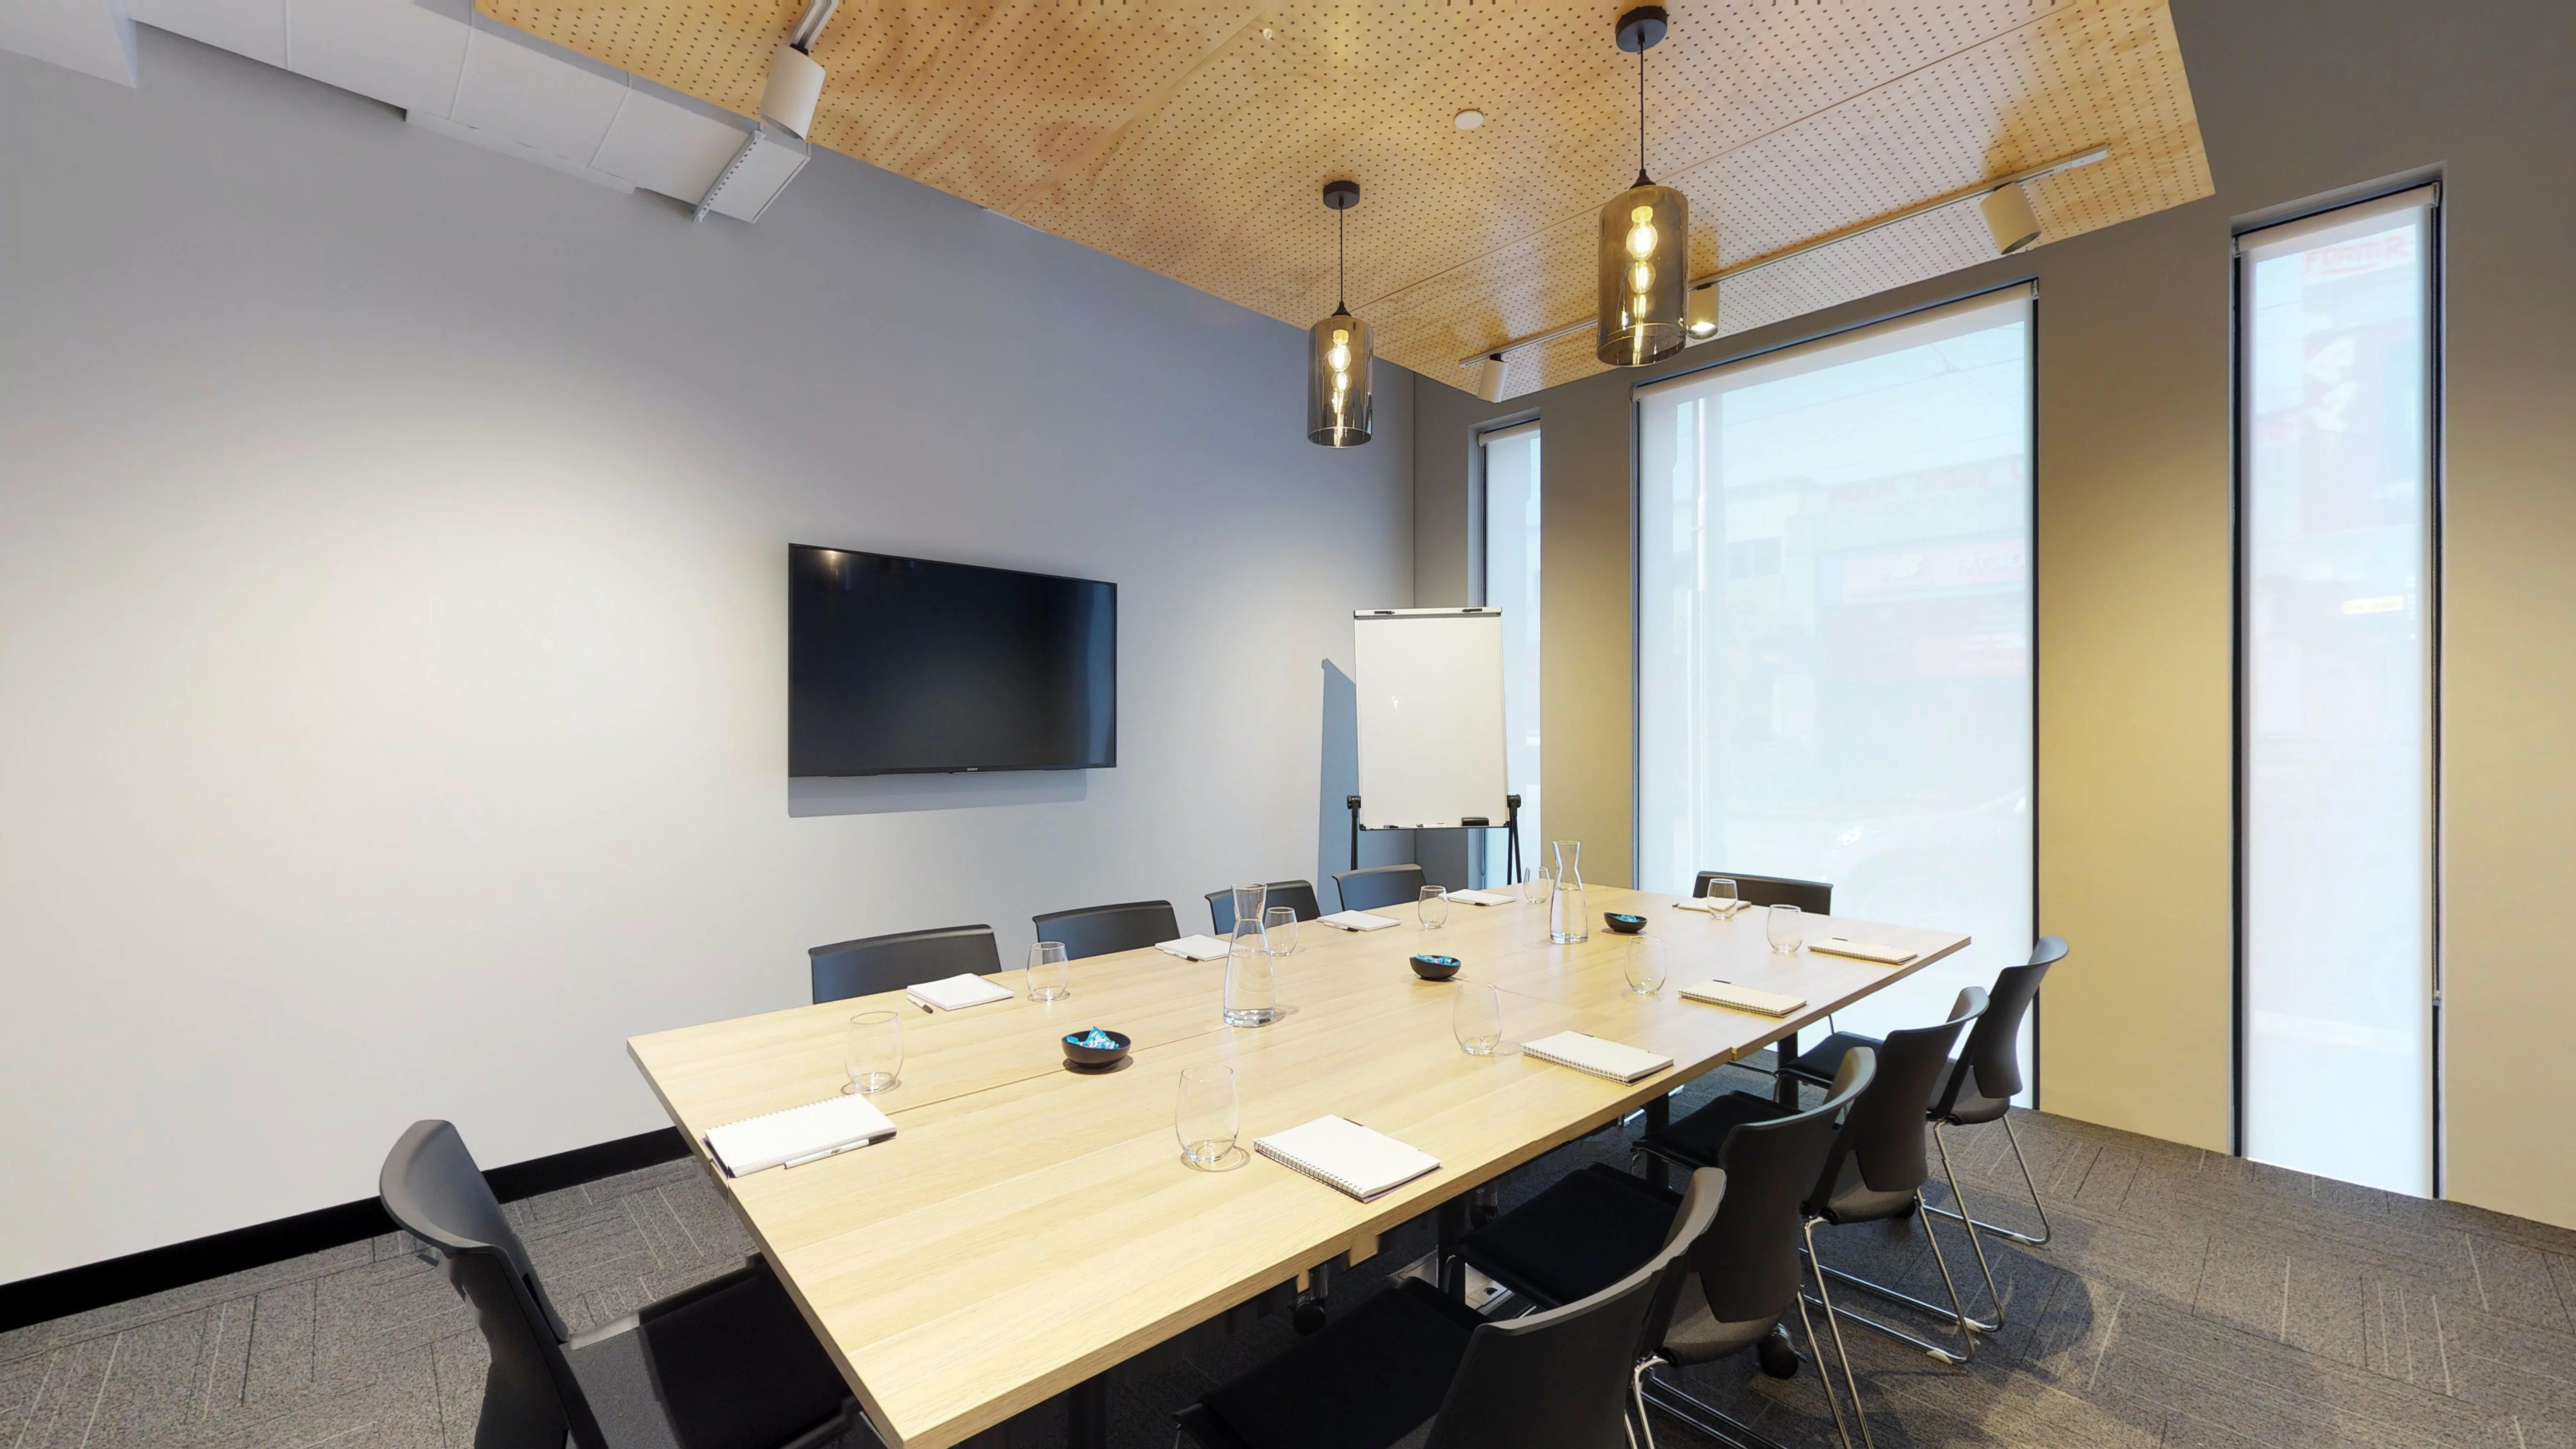 10 Person, meeting room at United Co., image 1